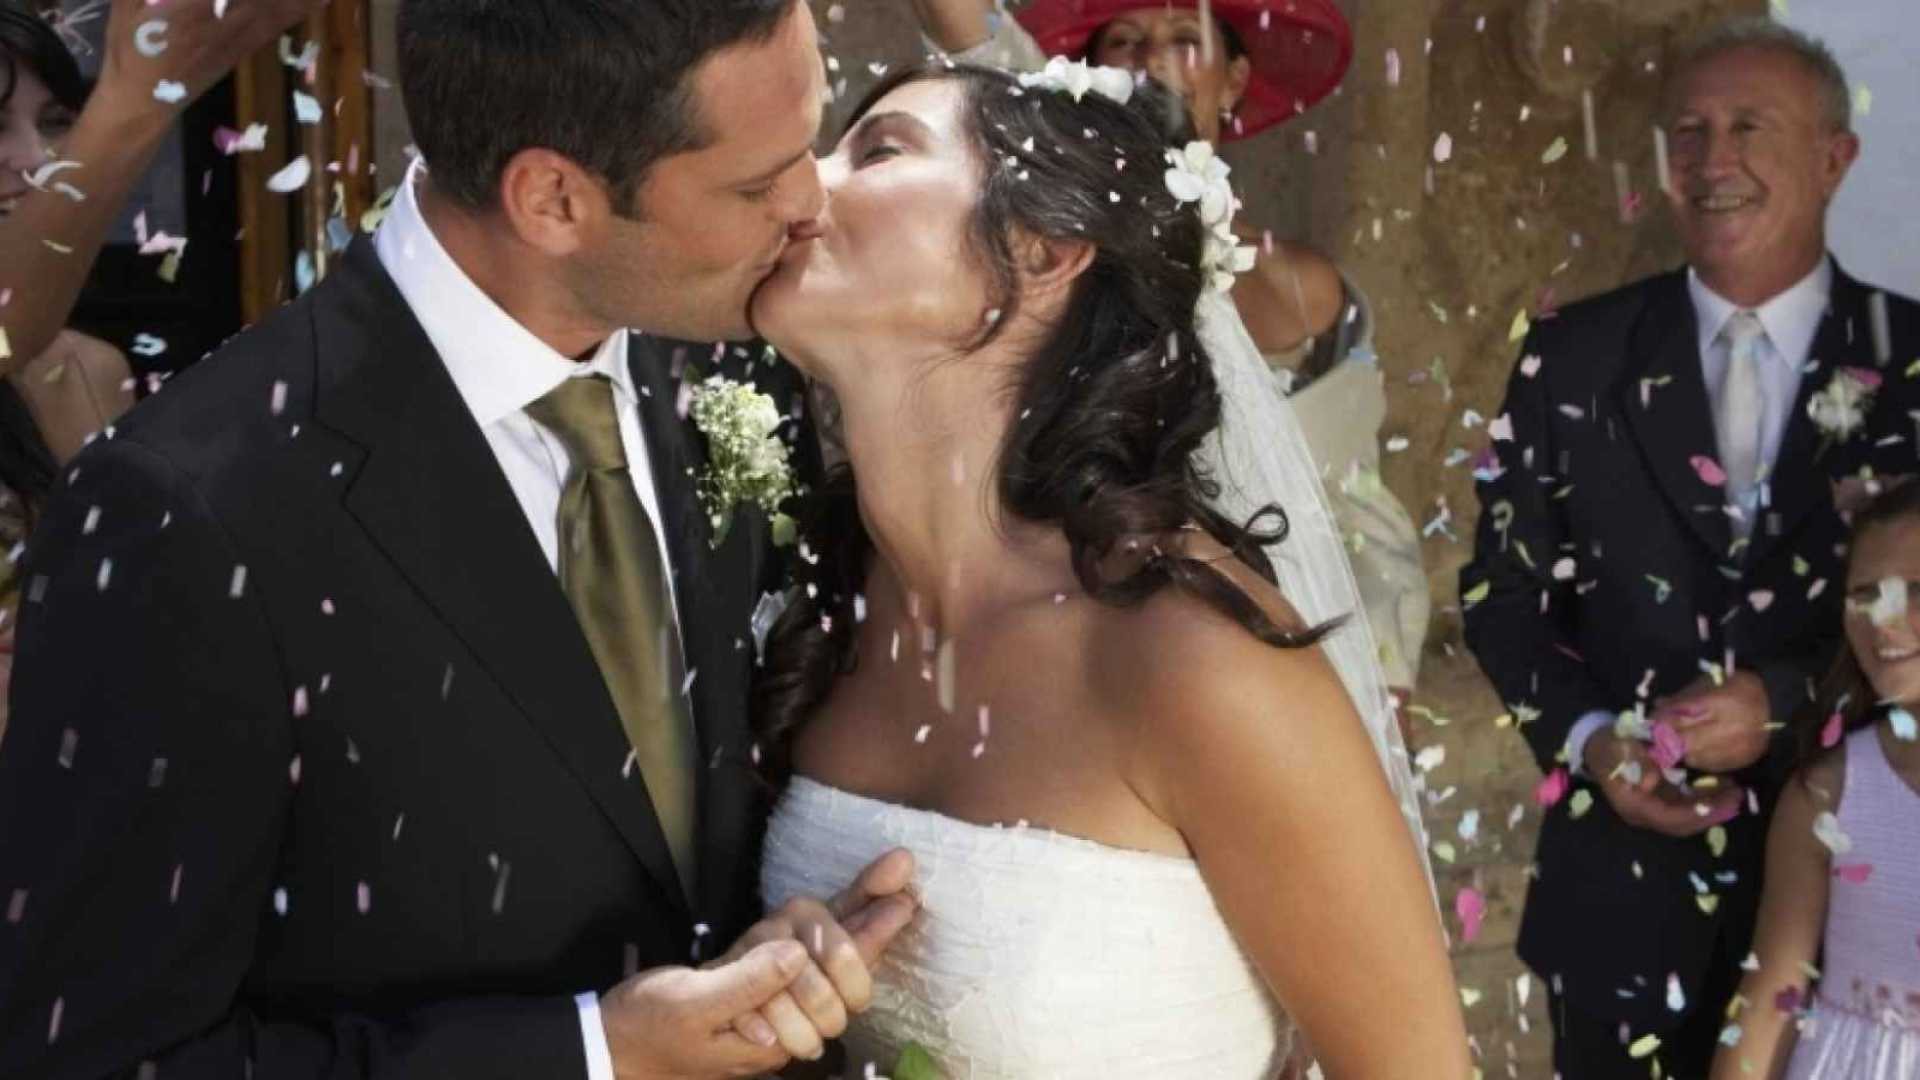 Should Your Spouse Be Your Business Partner?